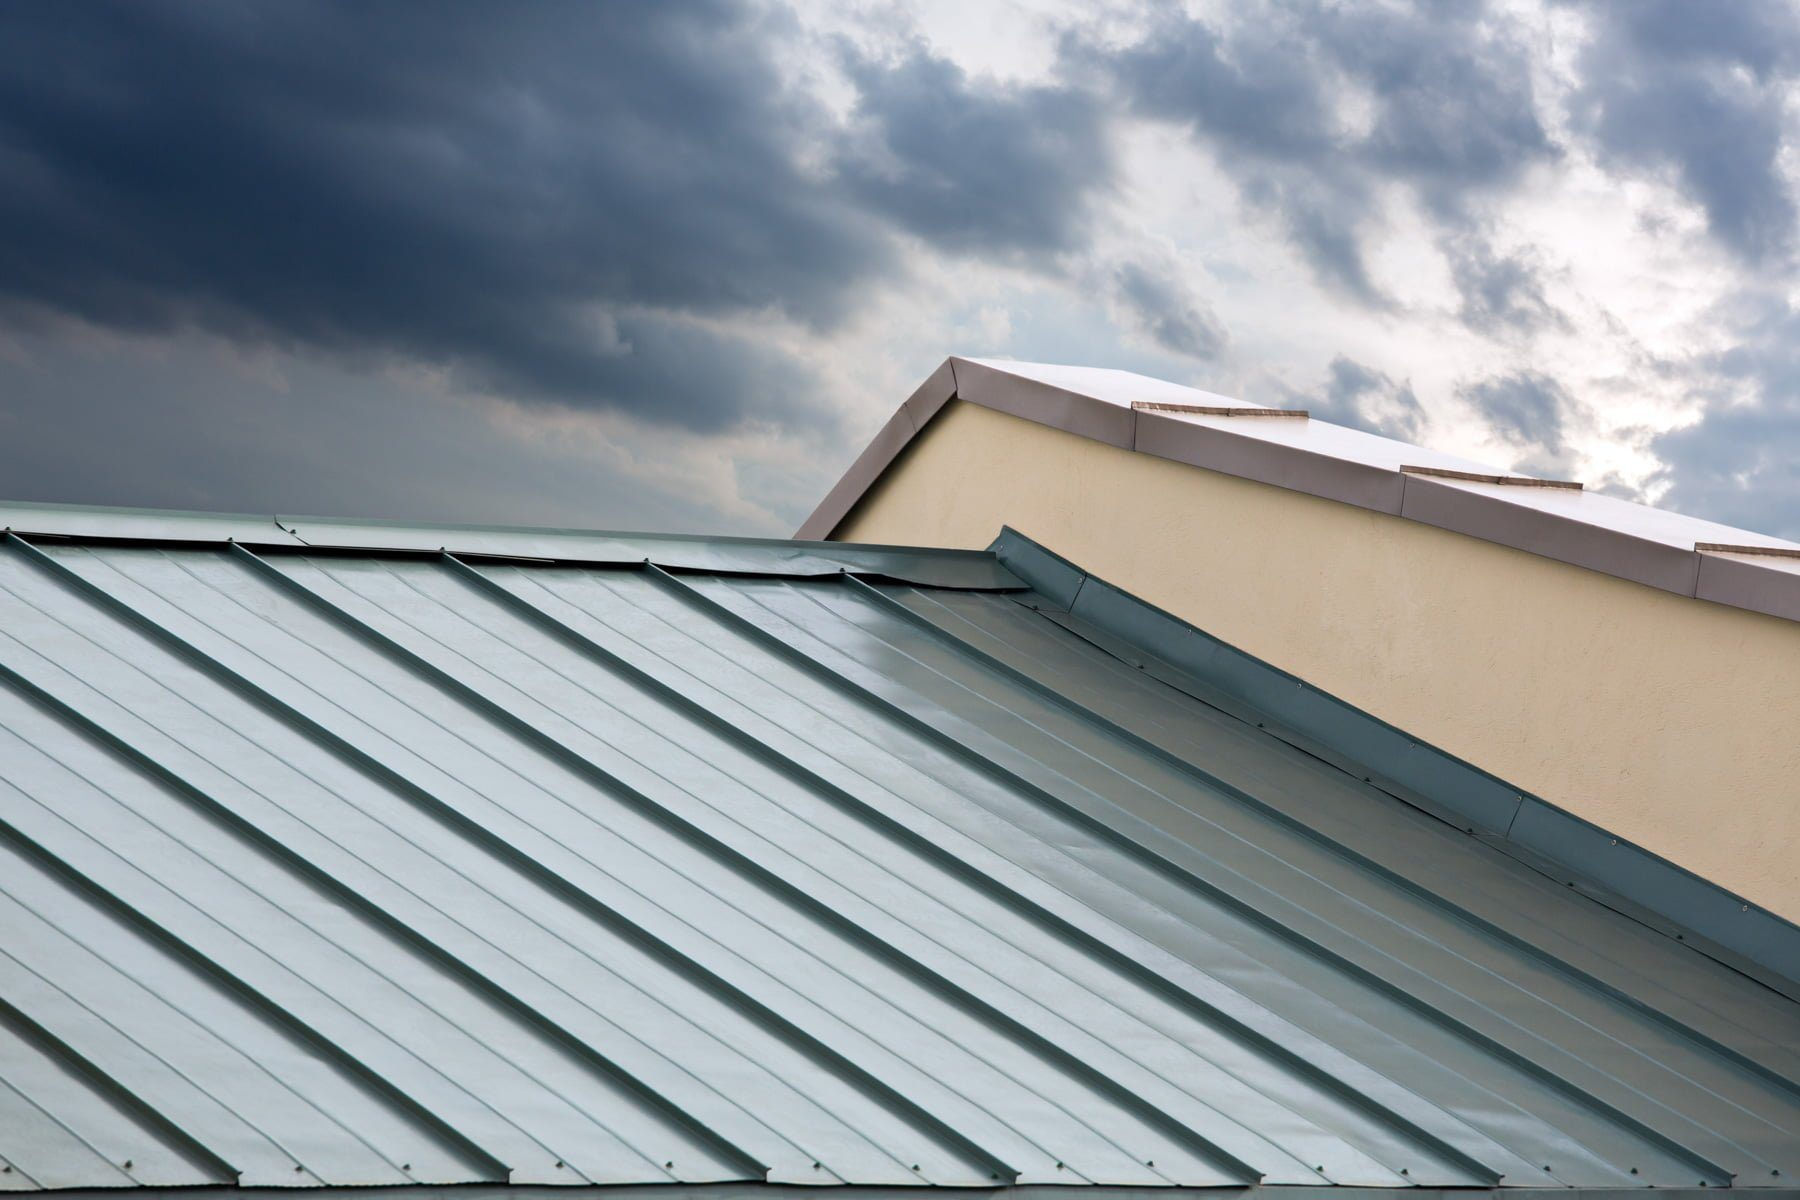 However Sealants Are One Of The Most Important Components In Building  Envelope And Waterproofing Protection To These Metal Roofs. If Overlooked  Then Leaks .